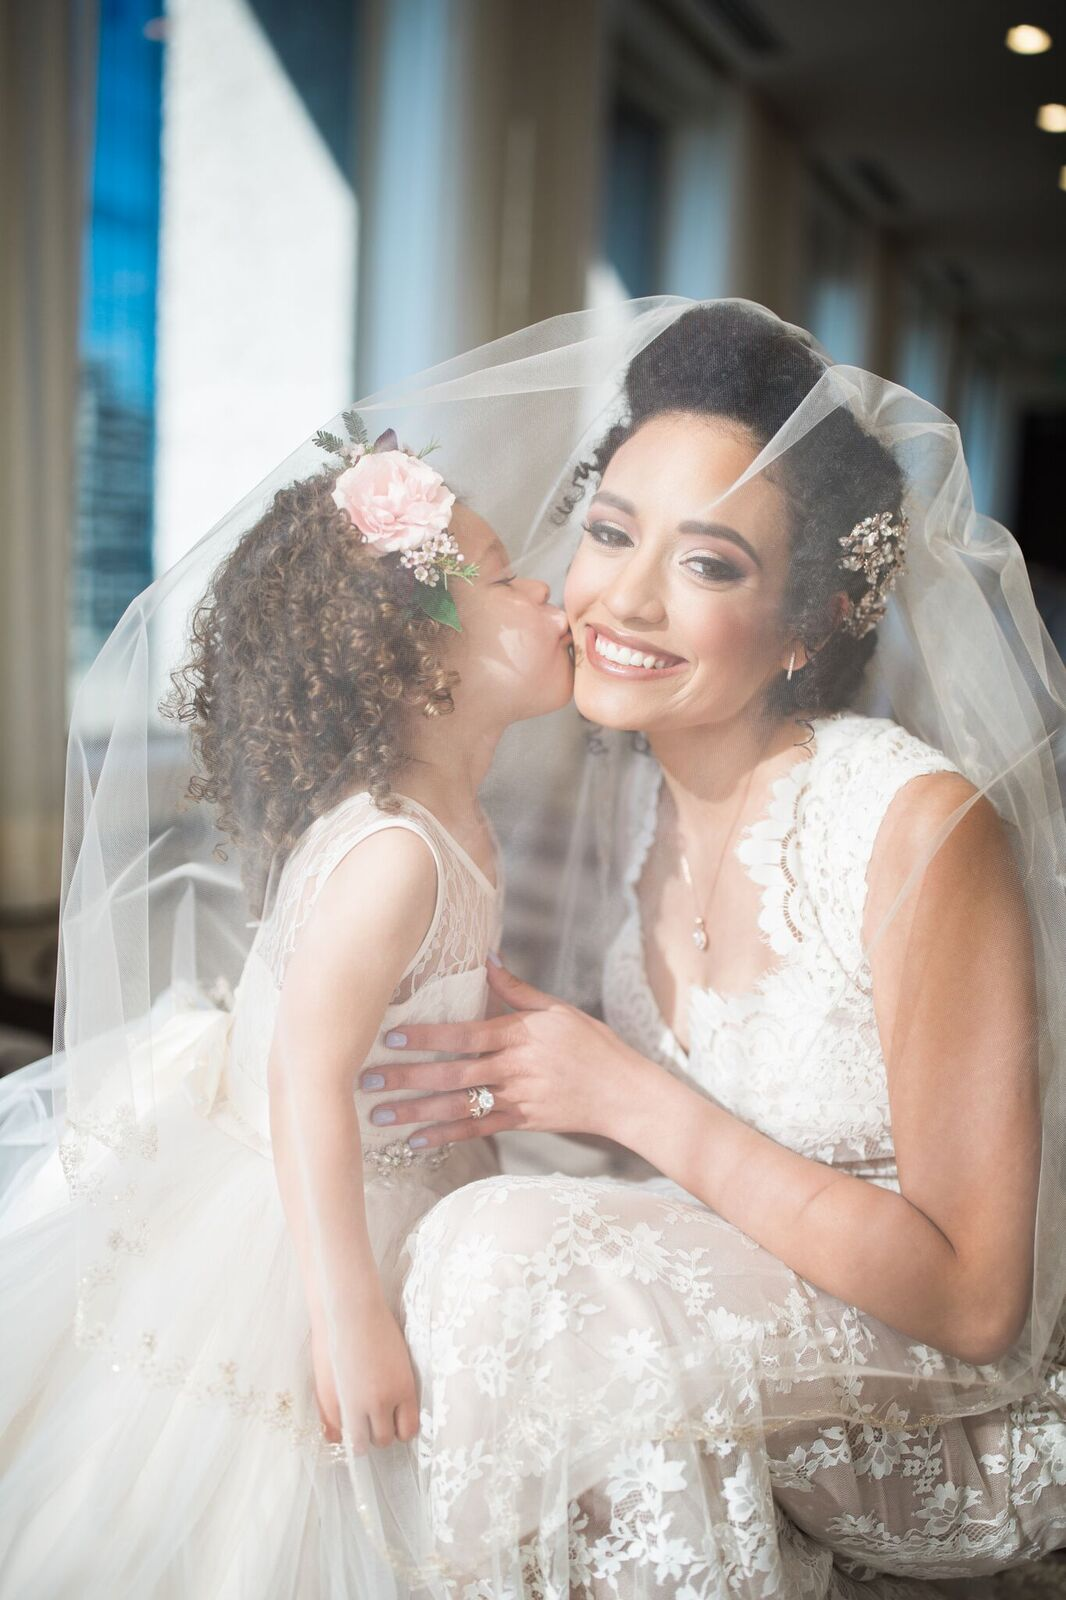 dallas wedding makeup artist bridal hair natural curls lashes & lace.jpeg